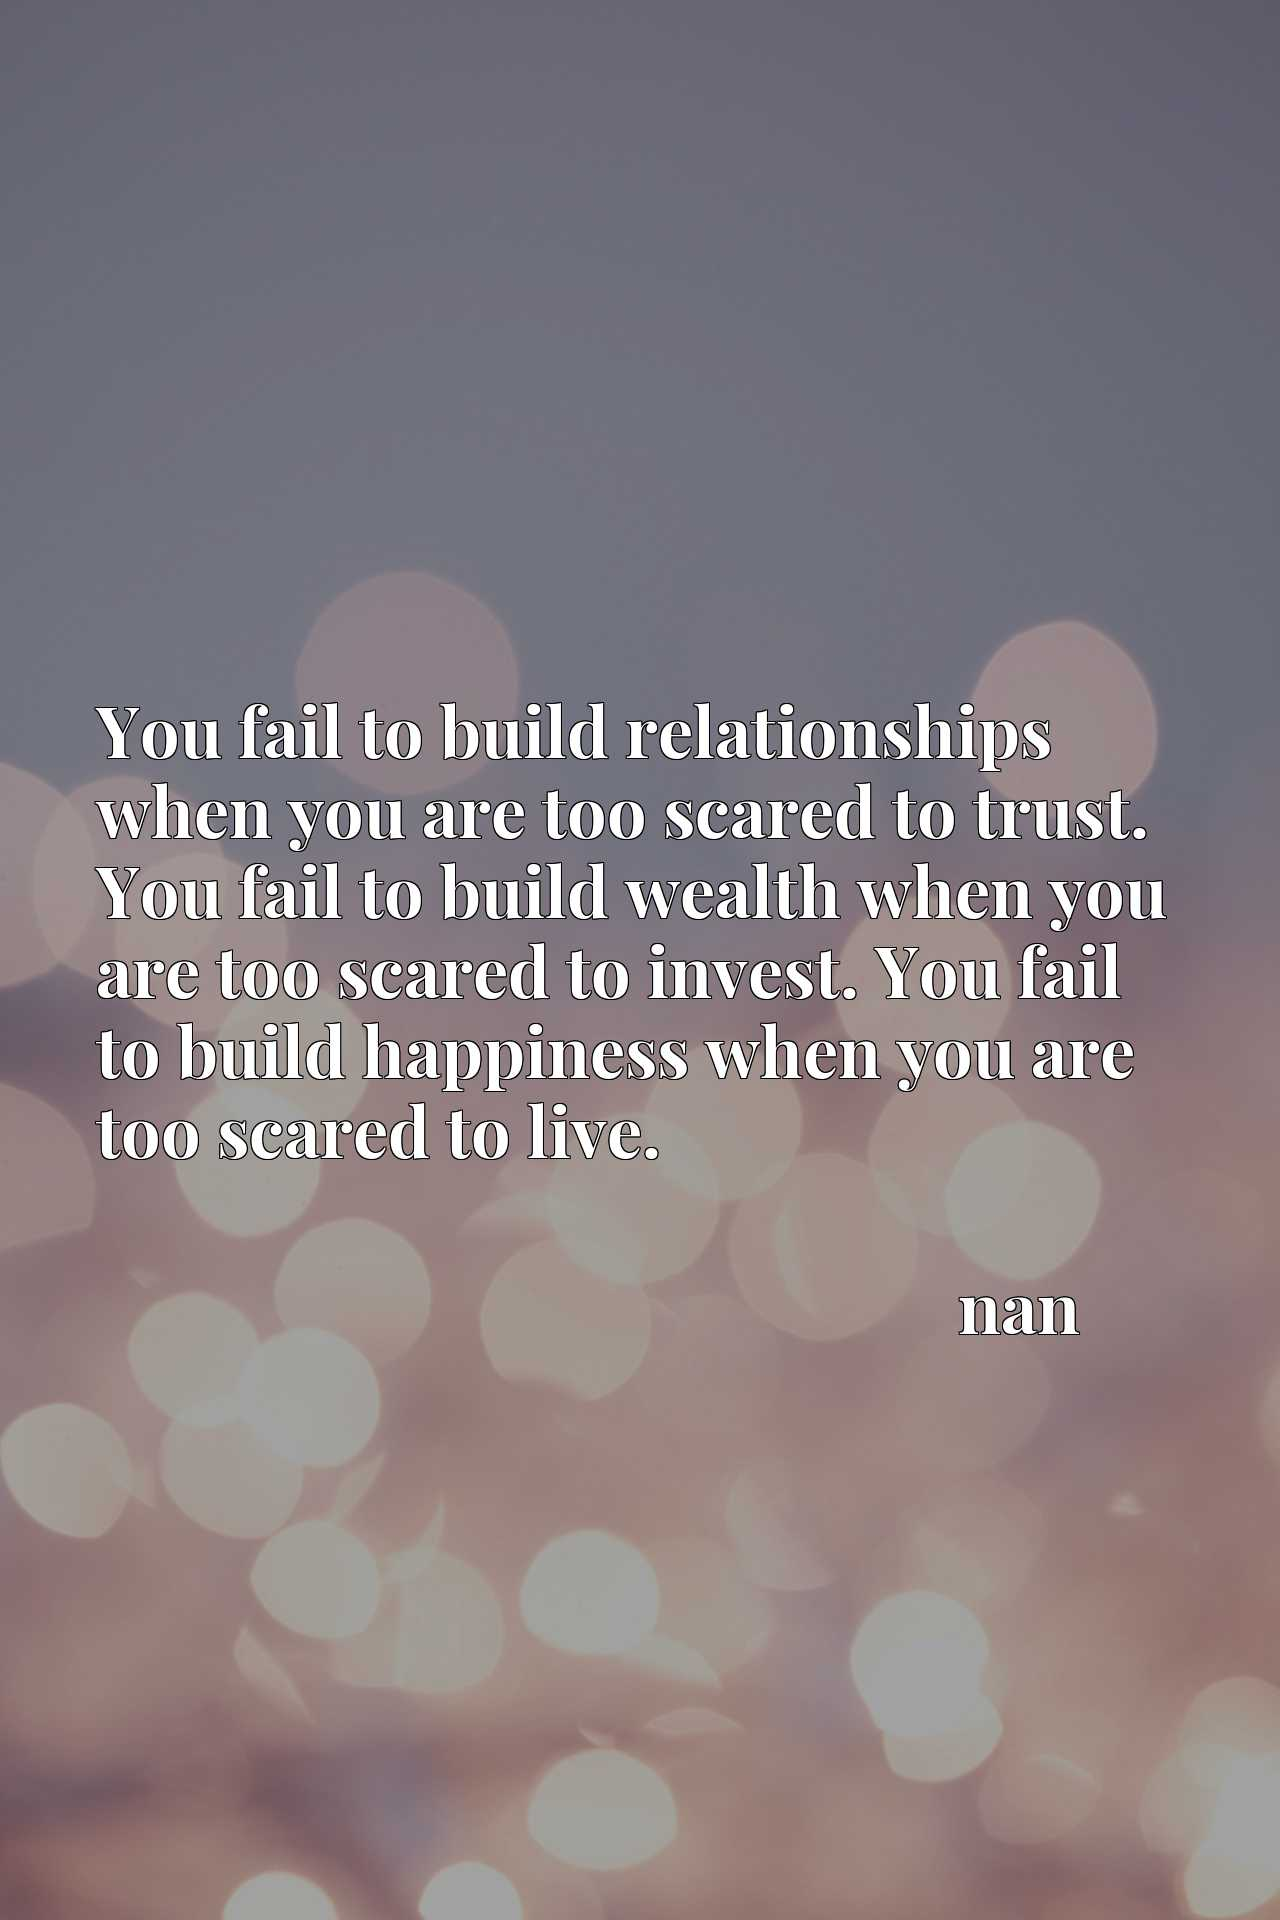 You fail to build relationships when you are too scared to trust. You fail to build wealth when you are too scared to invest. You fail to build happiness when you are too scared to live.